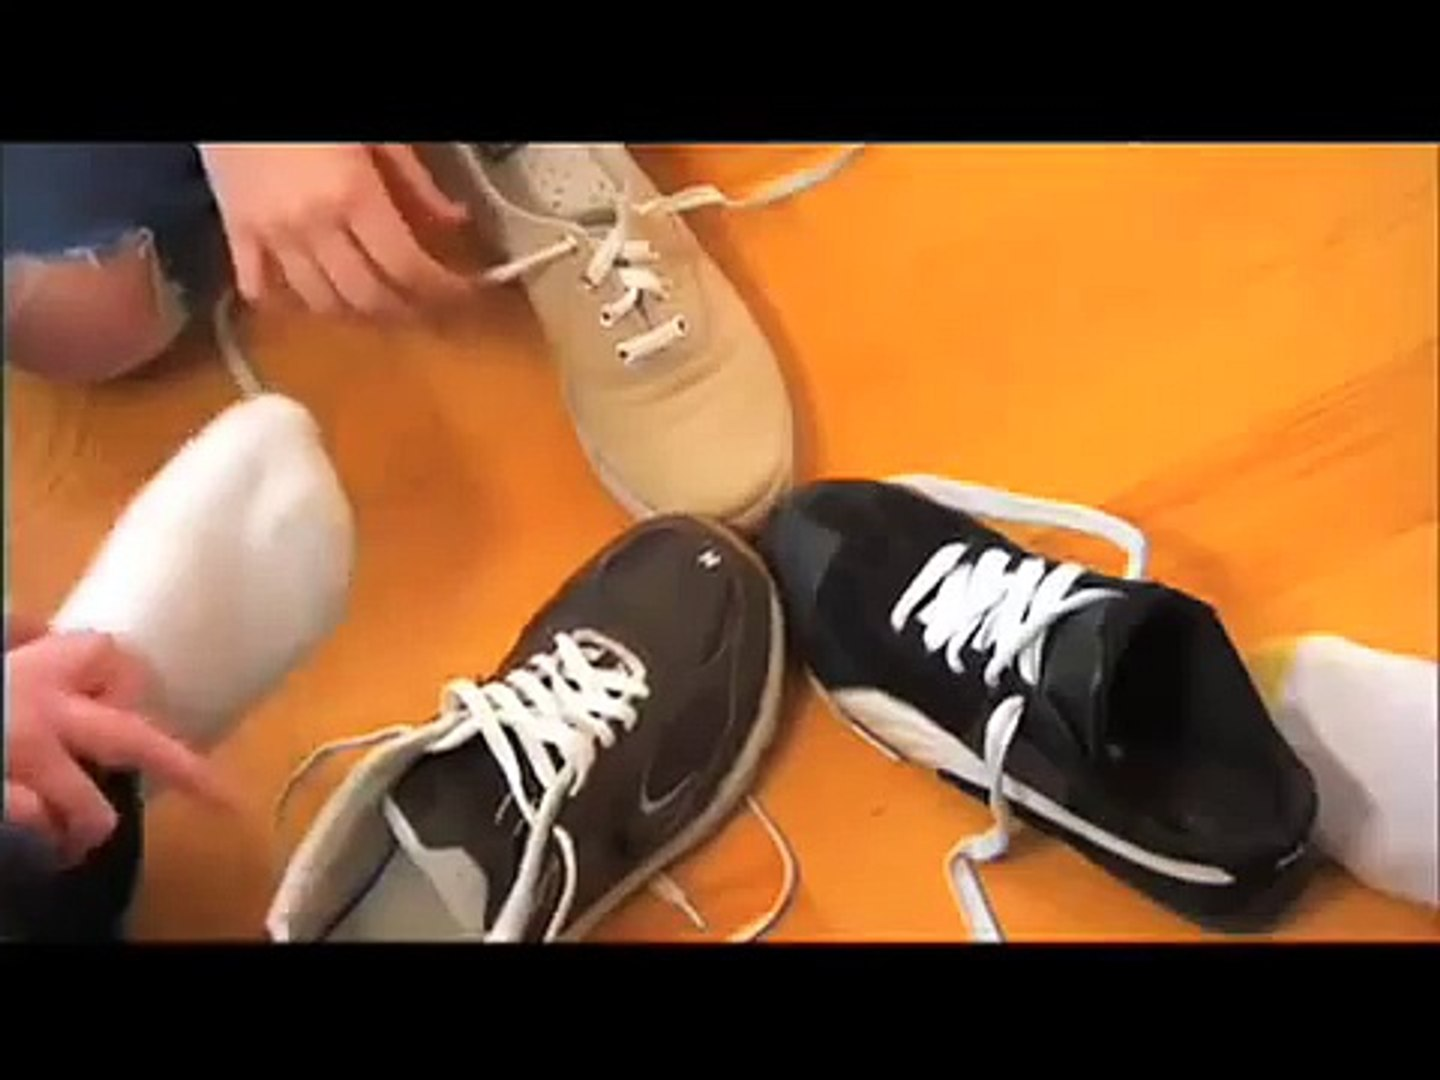 Watch Me Learn - how to tie my shoes